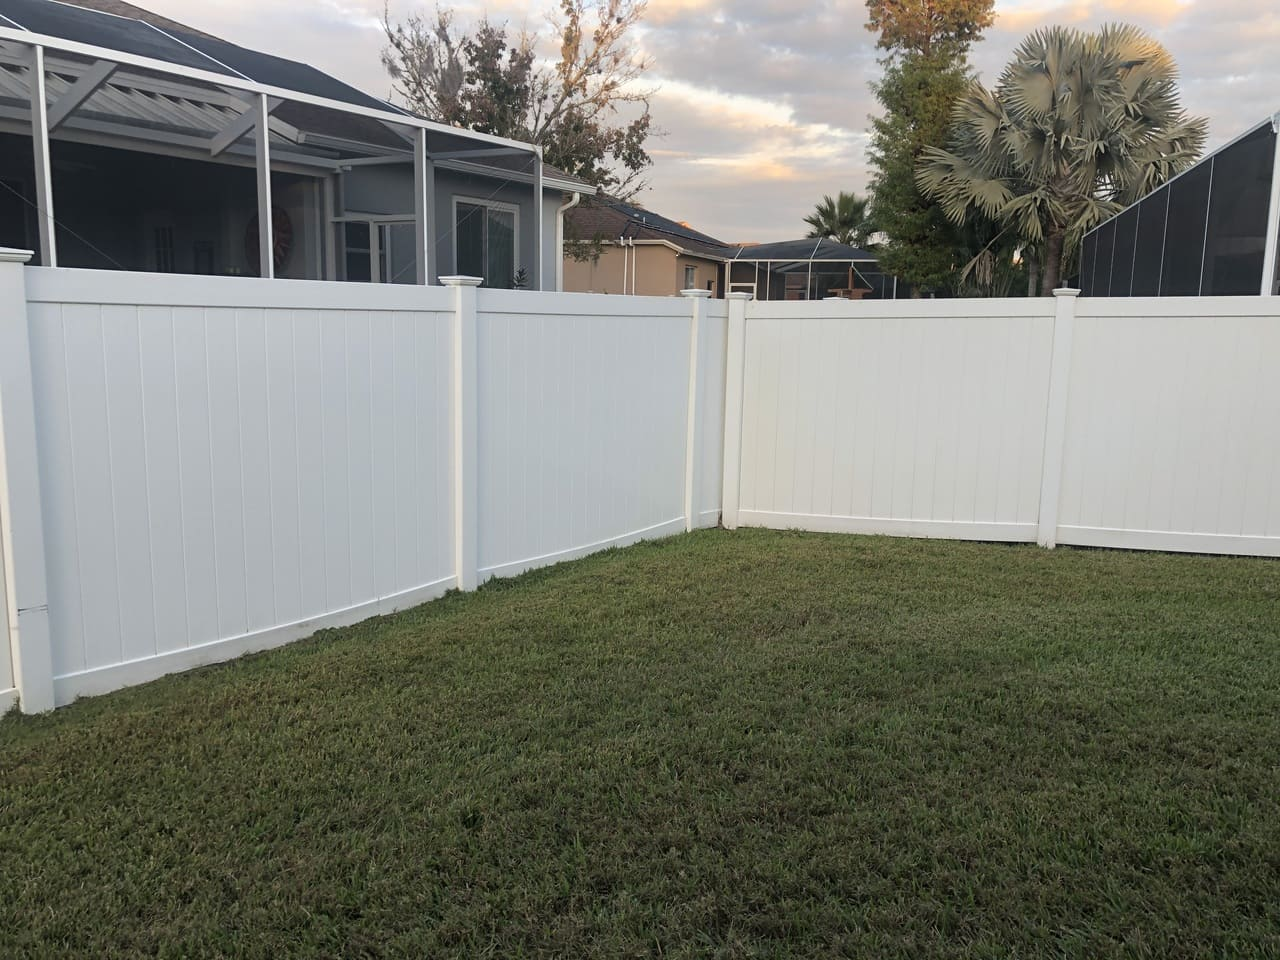 fence yard after paver striping